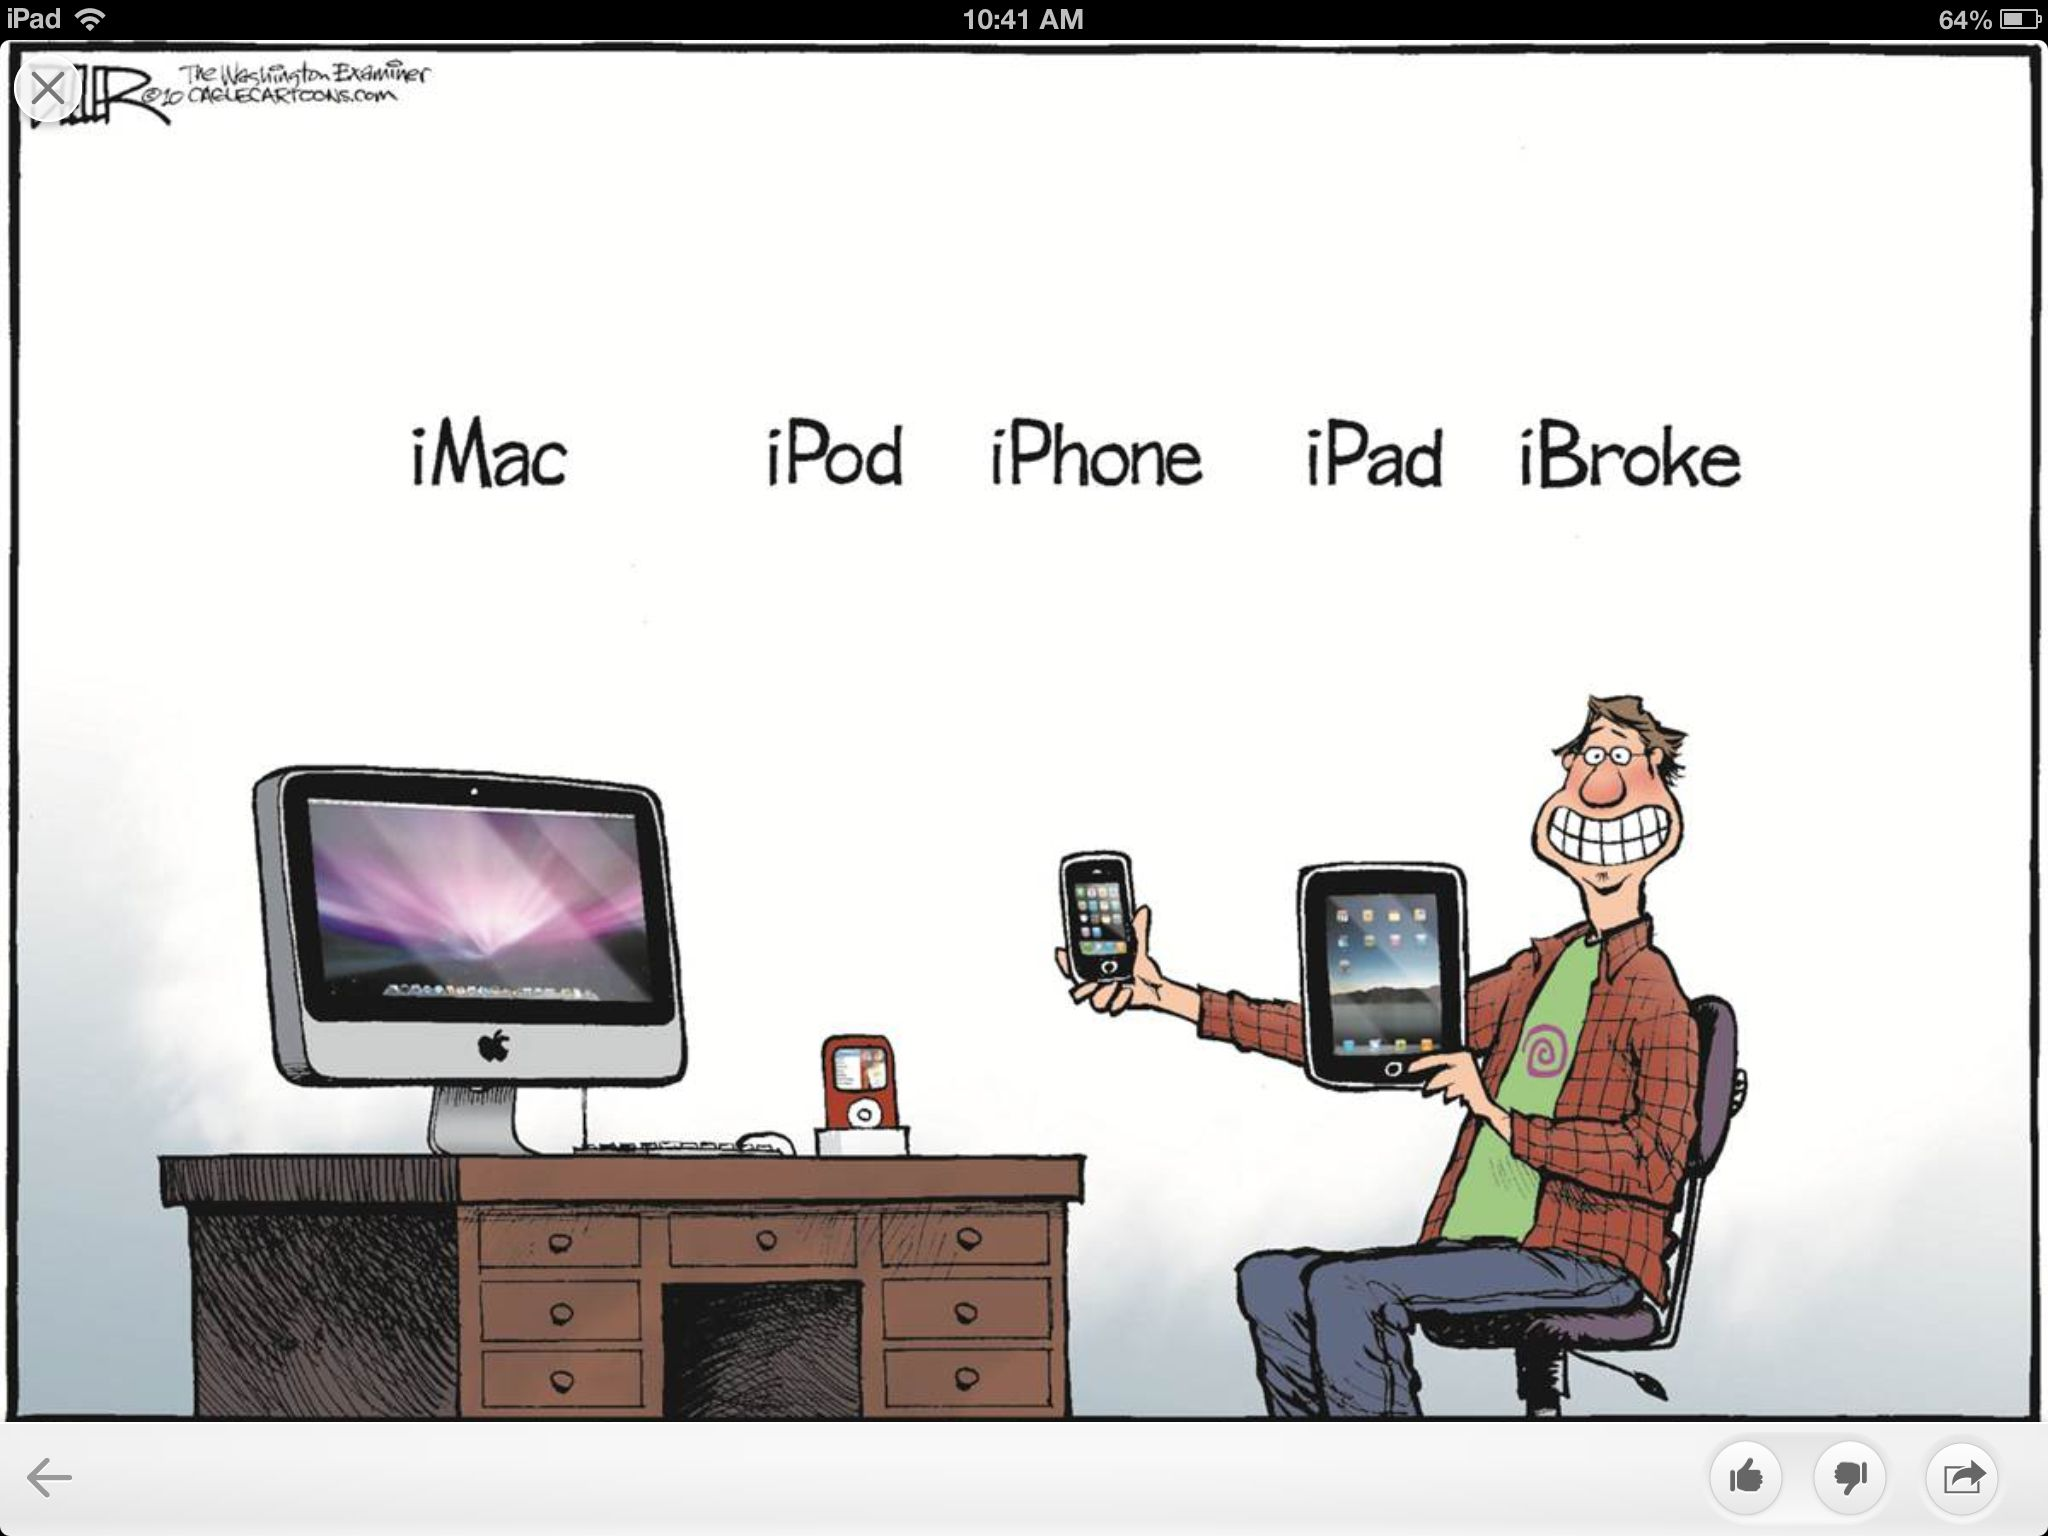 Pin by Danf81 on Daily Smile Ipad, School technology, Ipod